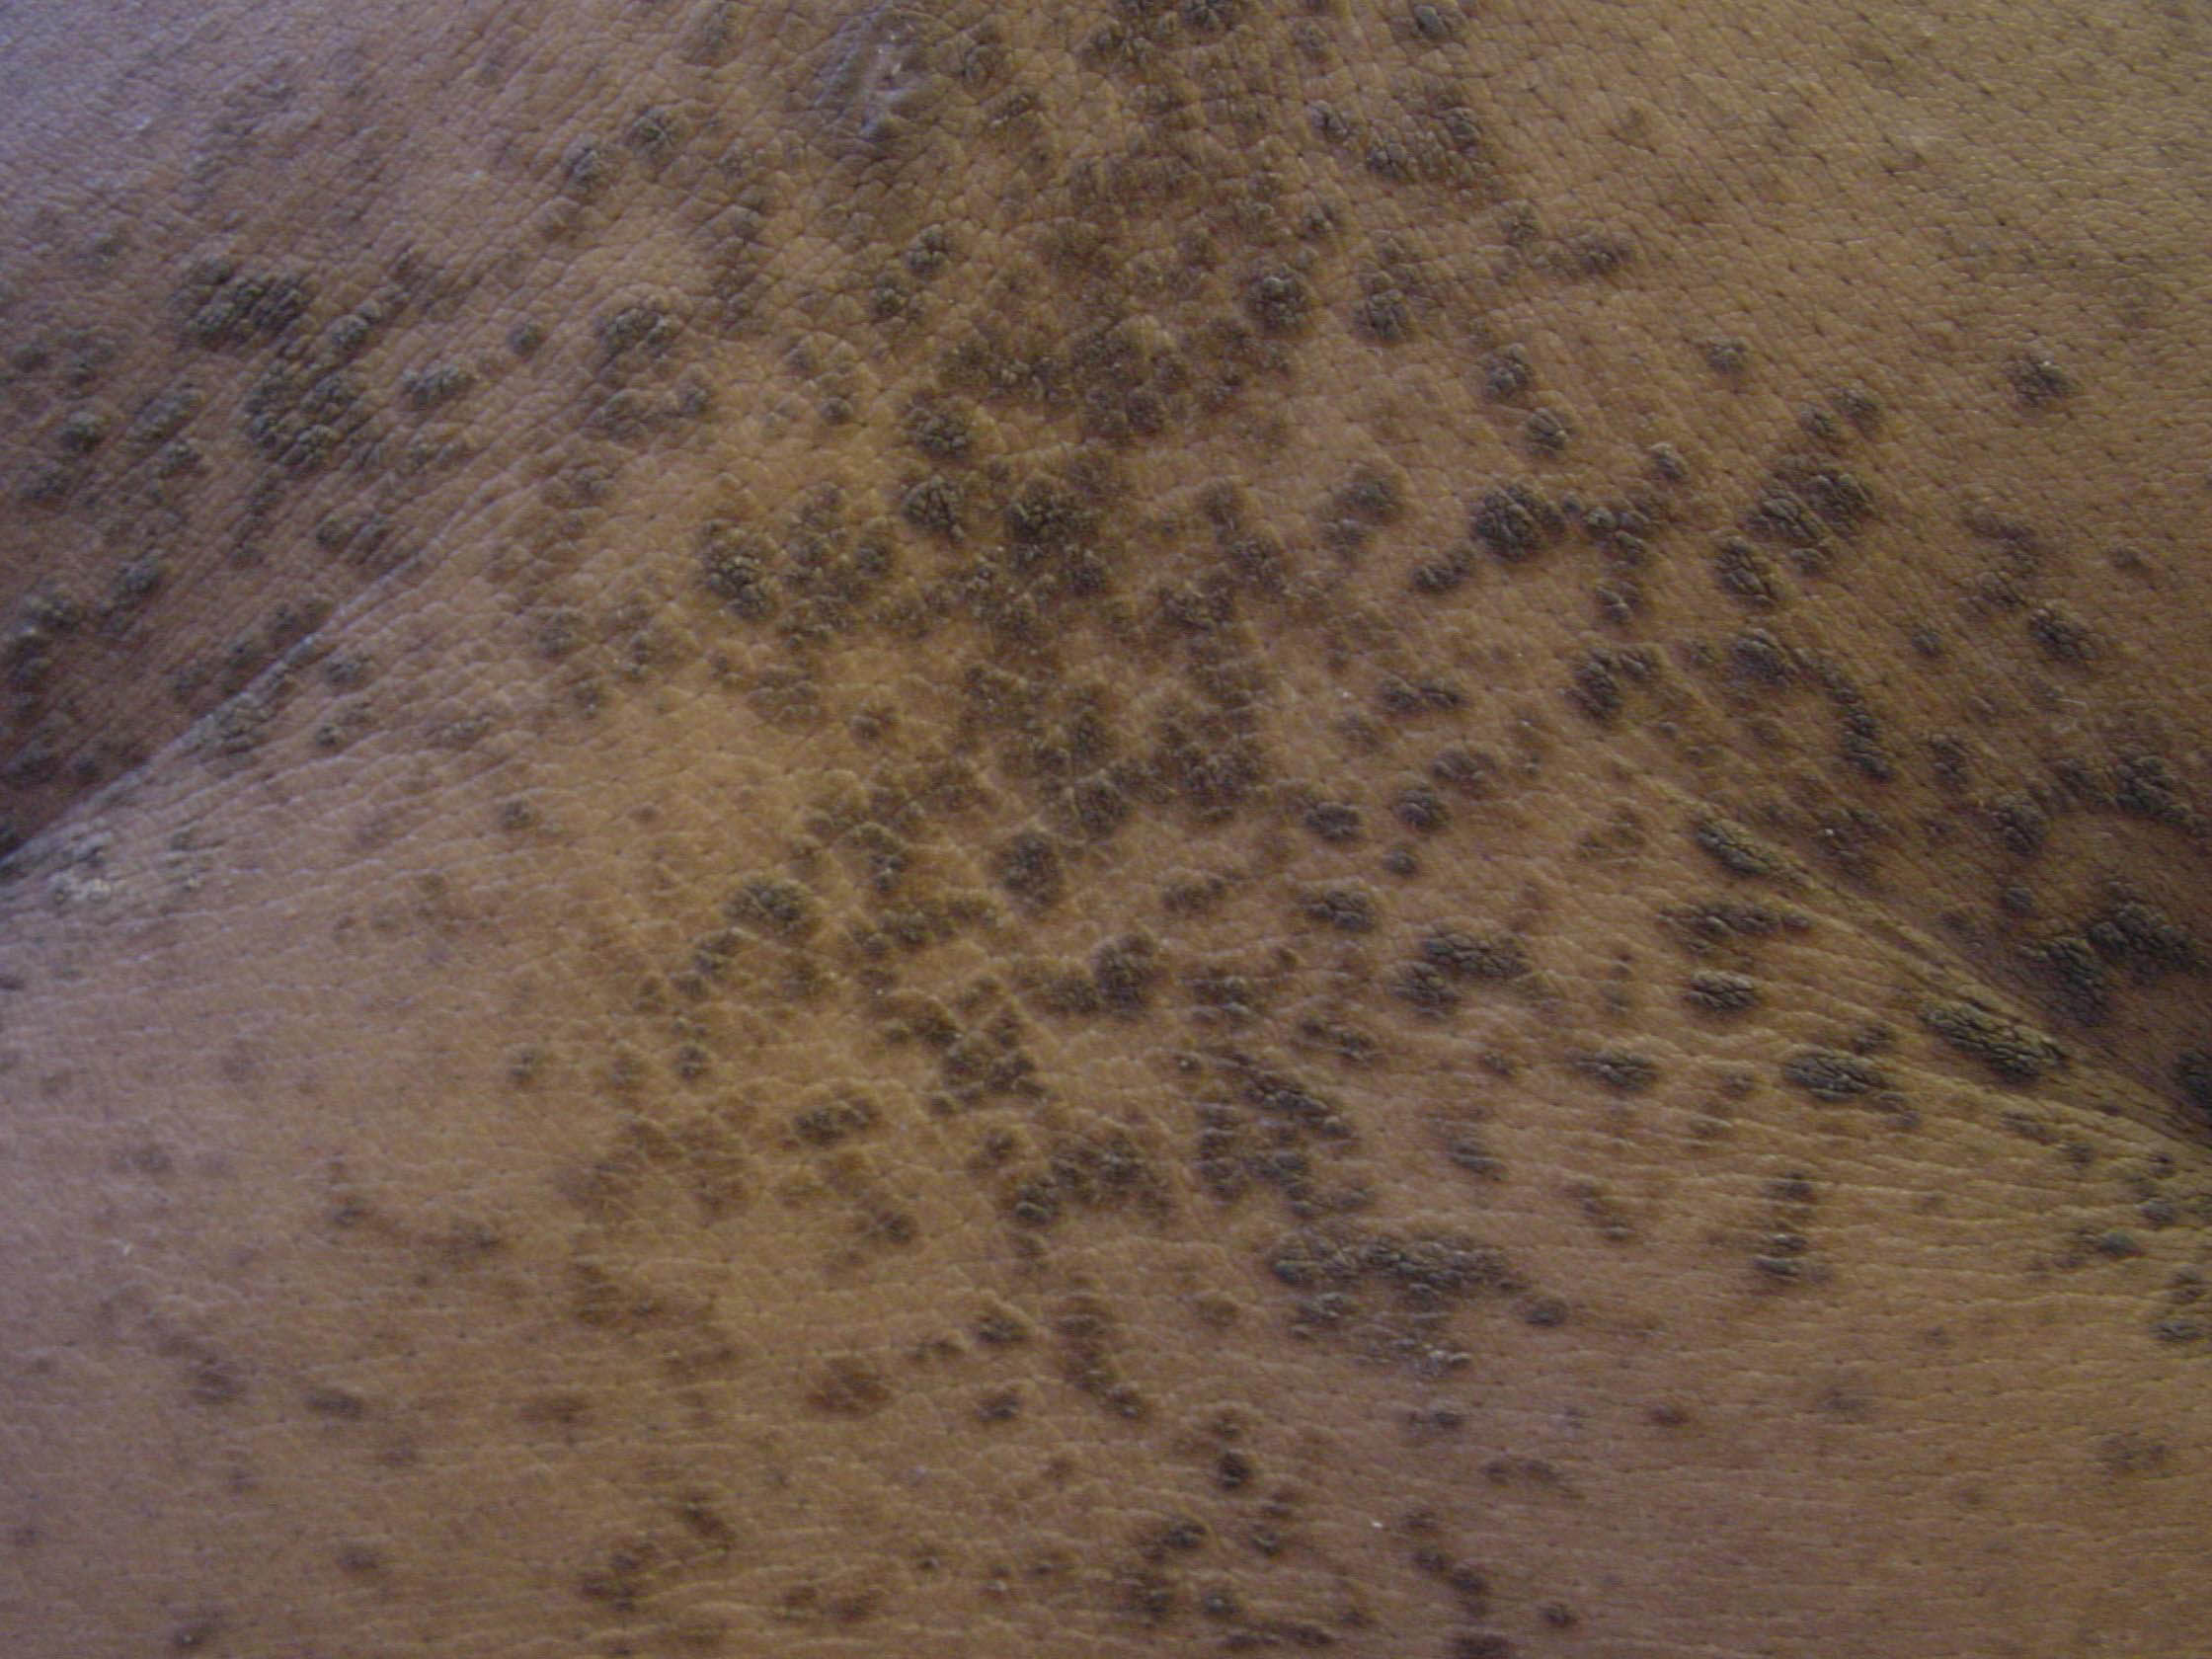 acanthosis nigricans image